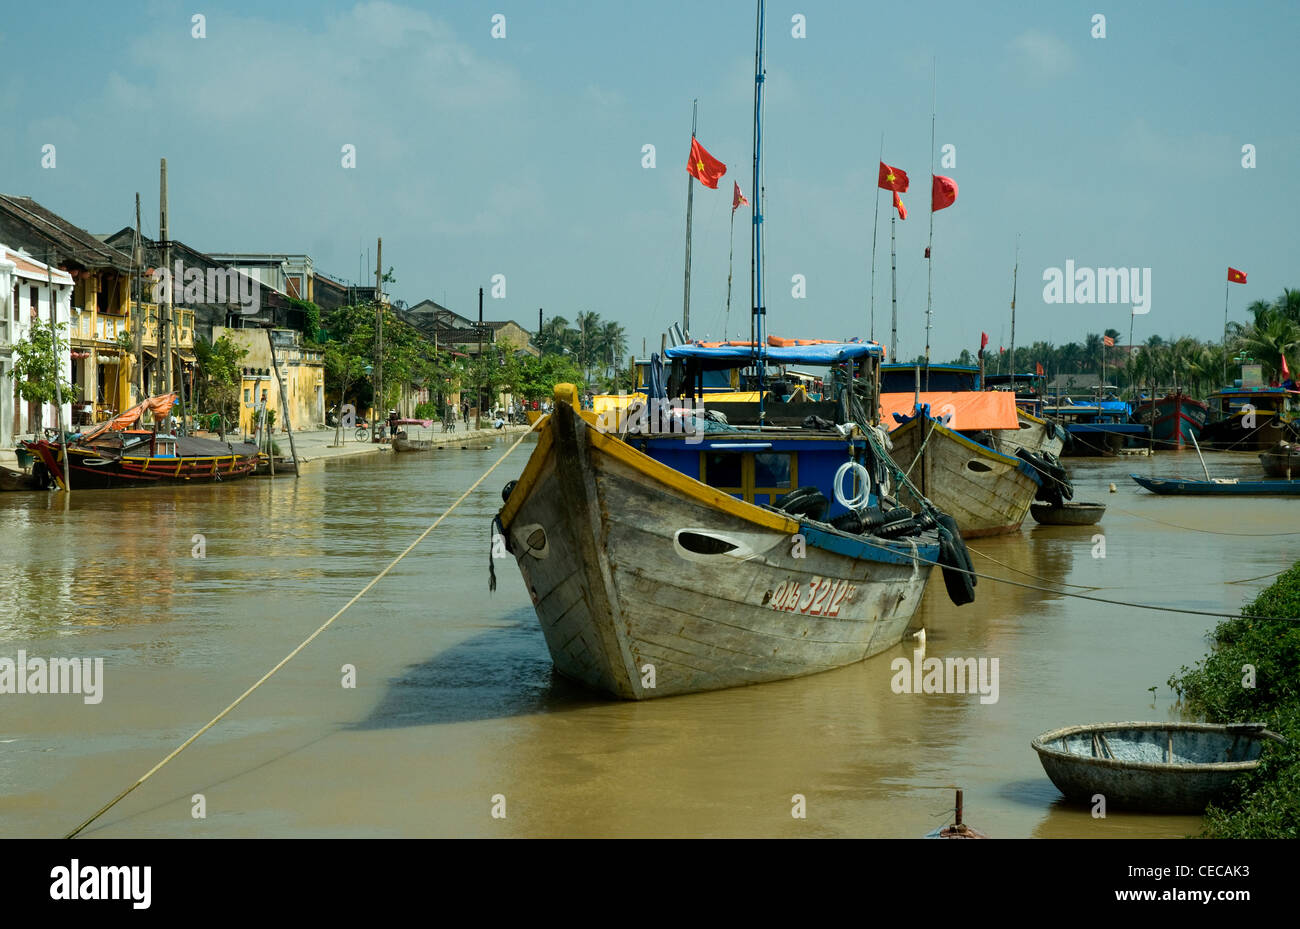 In Hoi An, a historic Vietnamese trading port, wooden fishing boats are anchored in the Thu Bon river - Stock Image